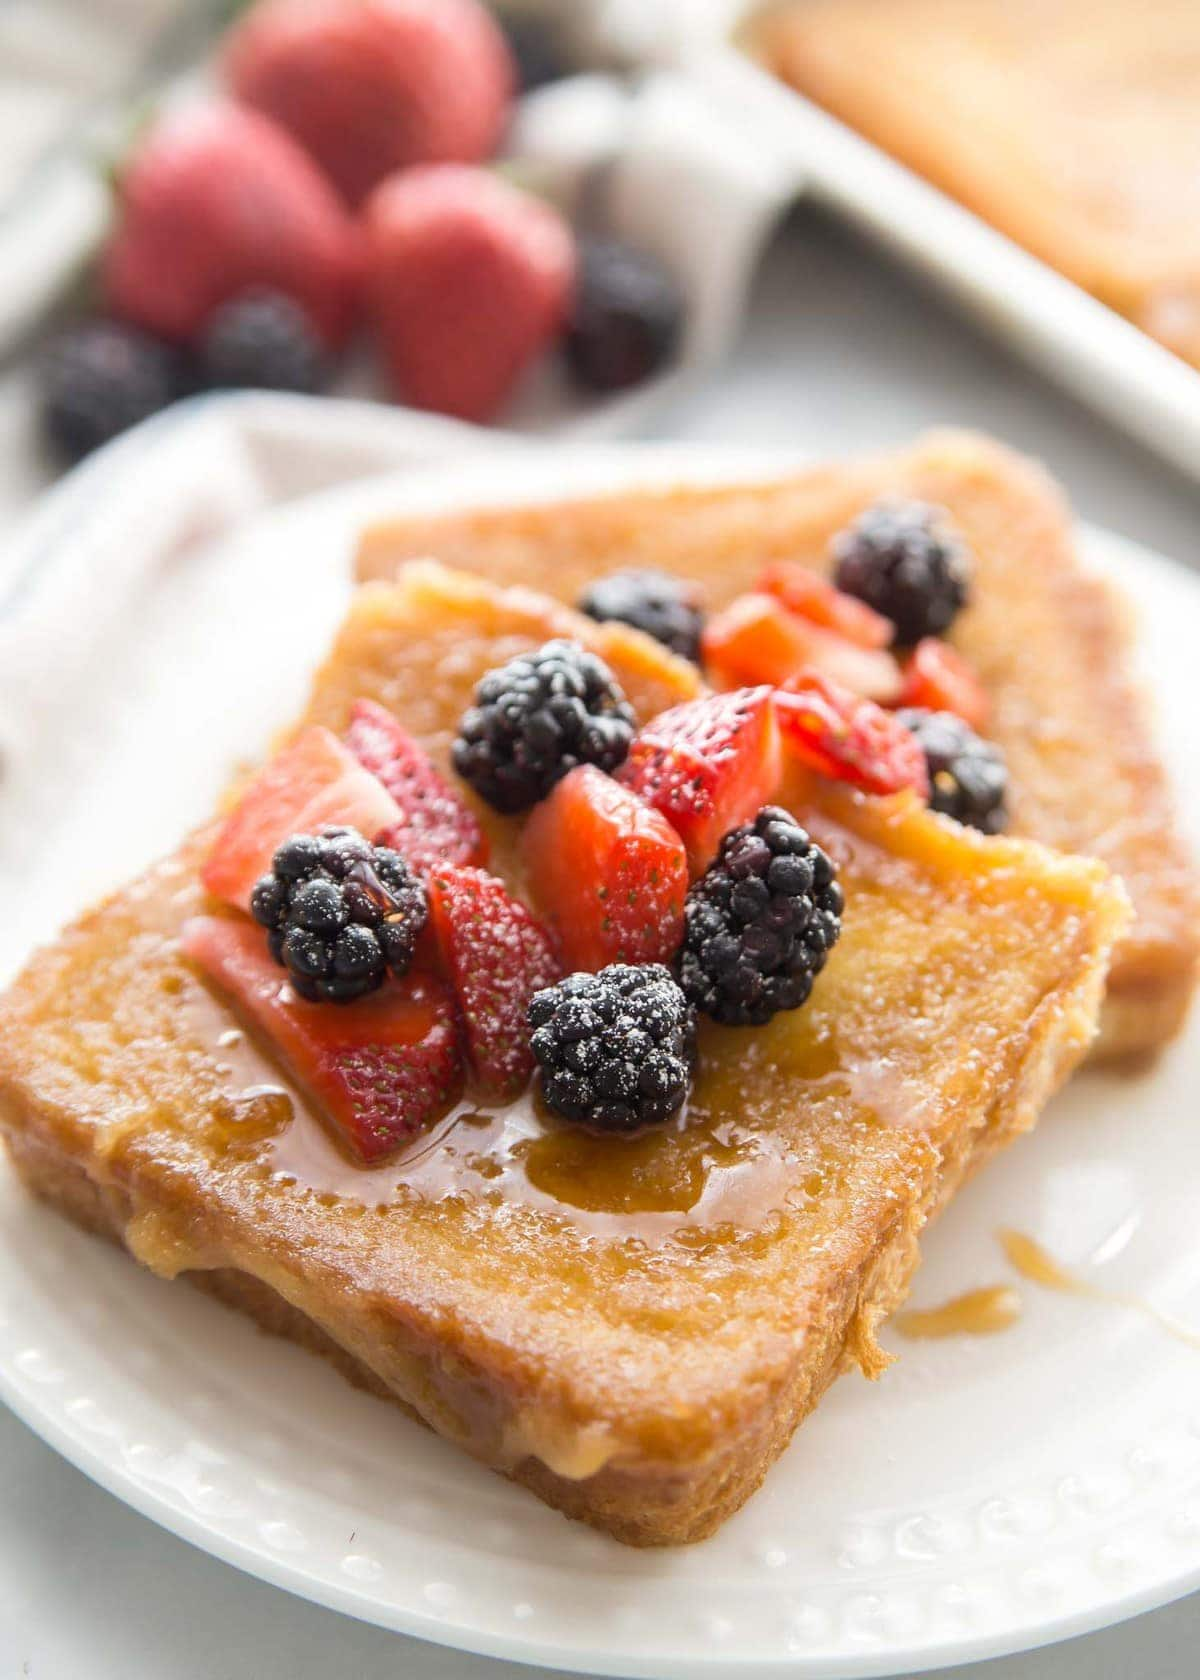 Creme Brulee French Toast recipe with berries on plate